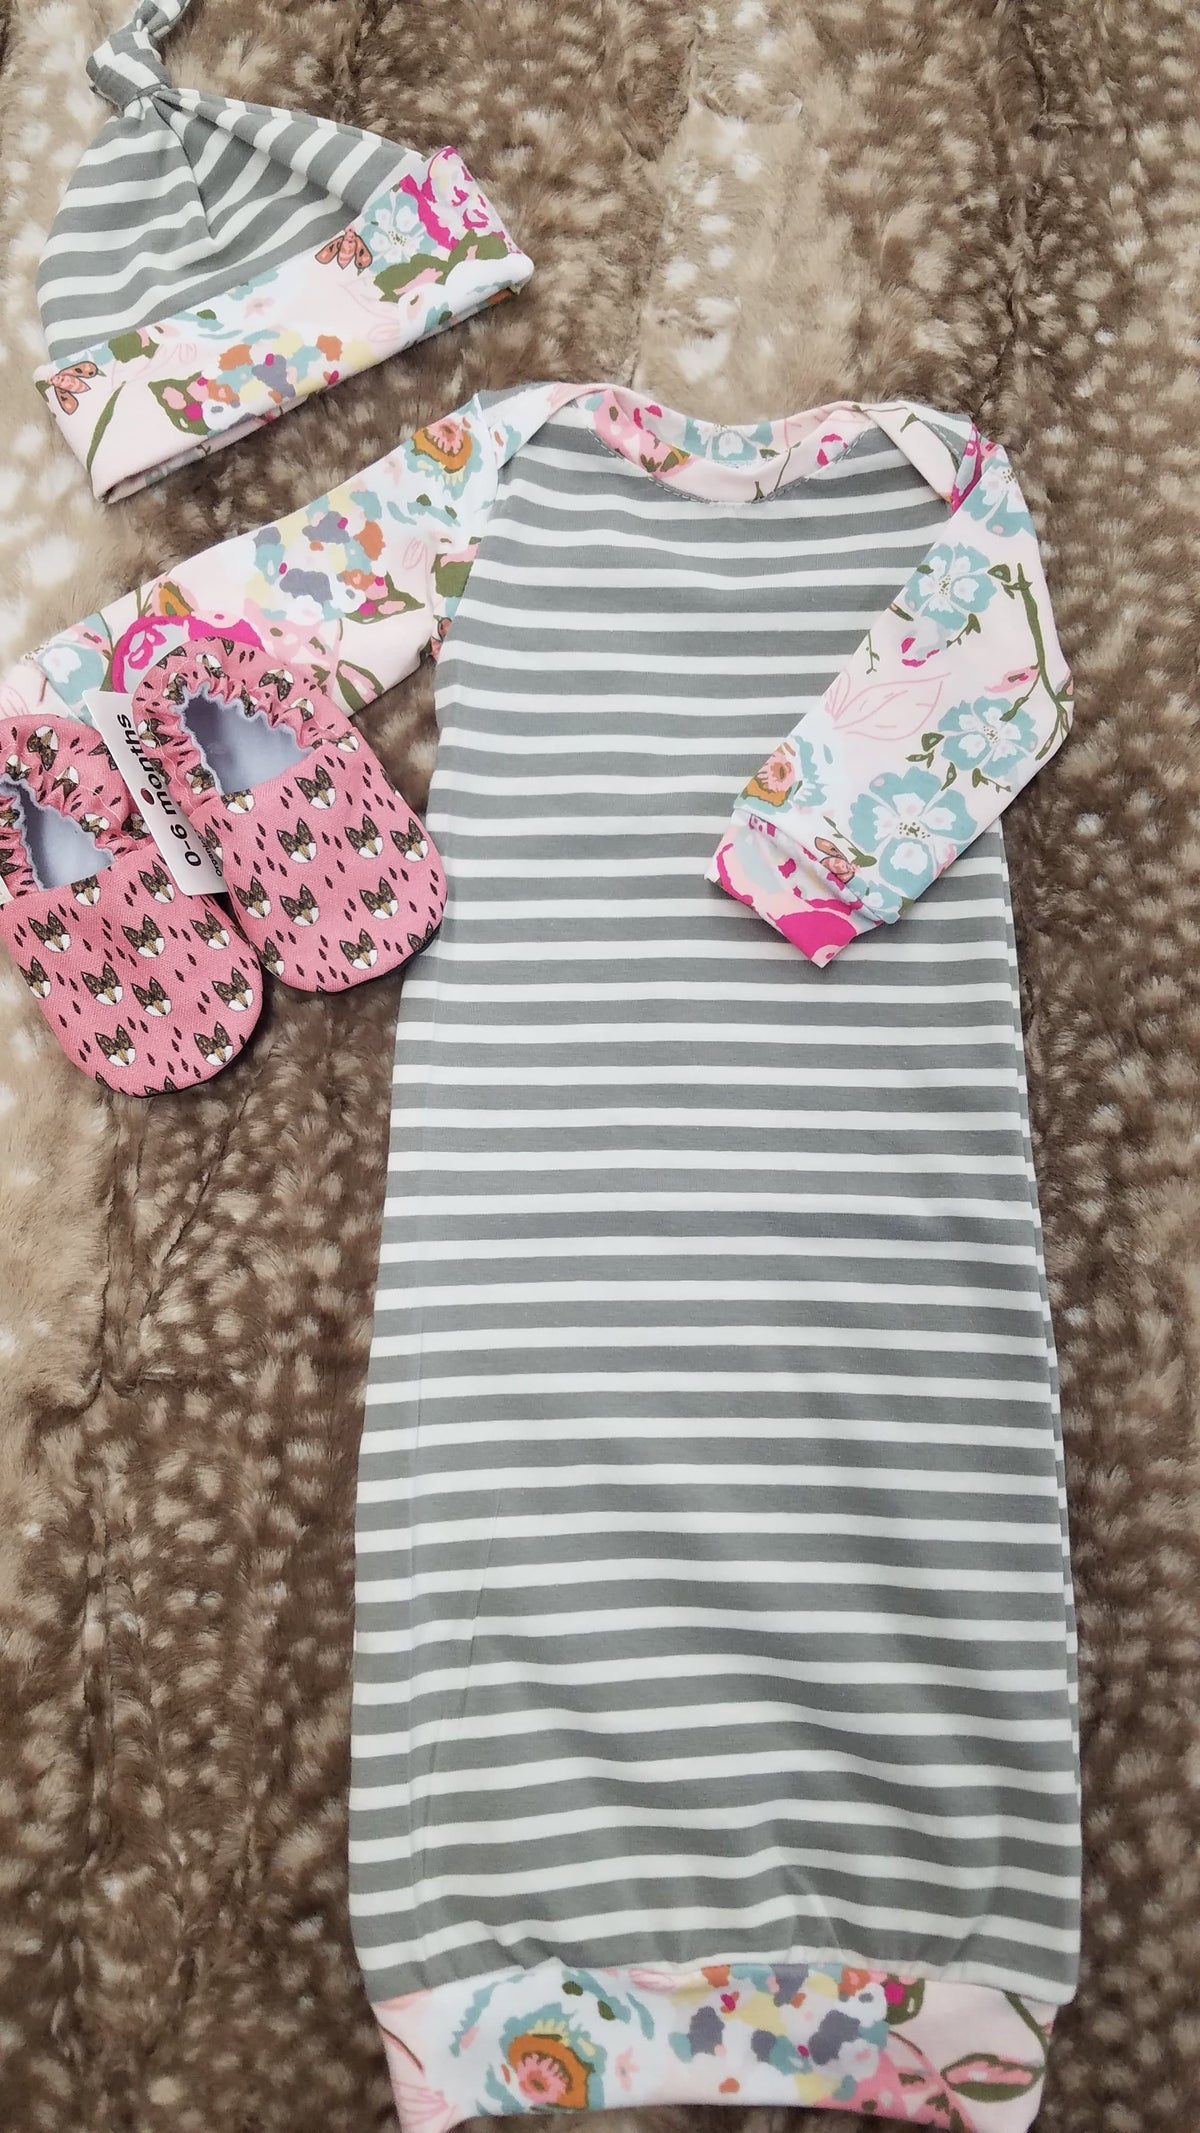 Baby Gown - Gray Stripe with Blush Floral Going Home Outfit